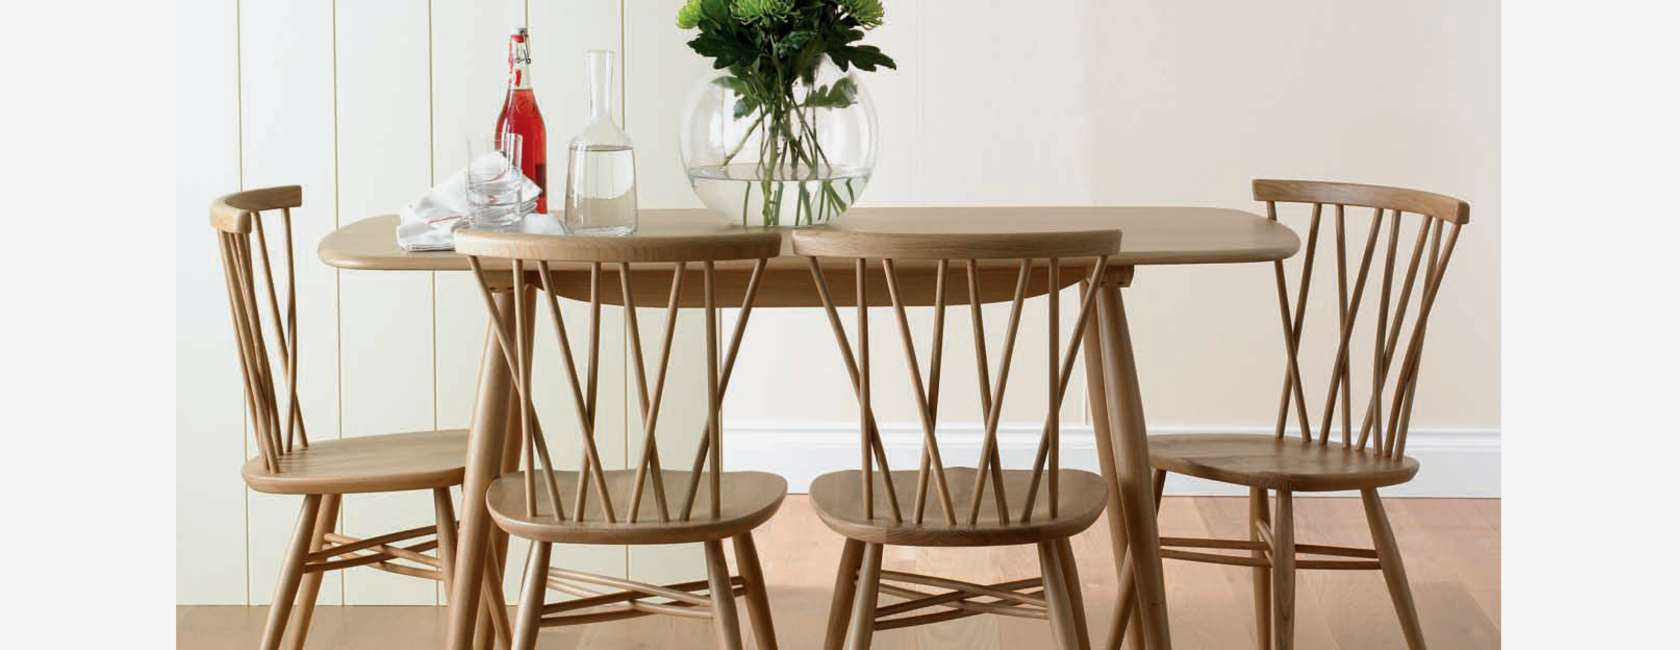 Ercol For John Lewis Chiltern Dining Room Furniture